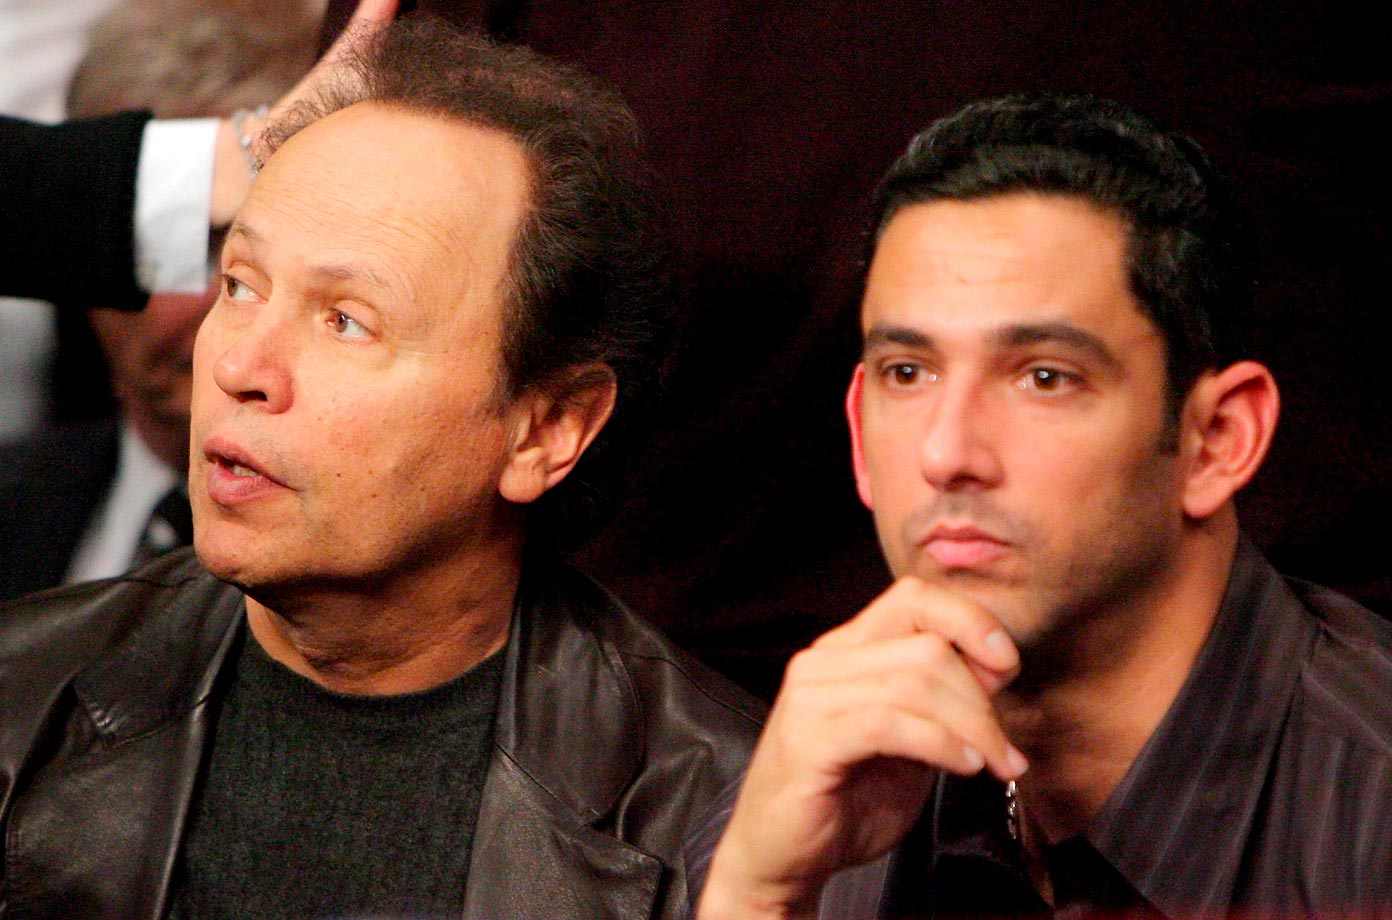 Billy Crystal and Jorge Posada sit together before the start of the fight between Miguel Cotto and 'Sugar' Shane Mosley.